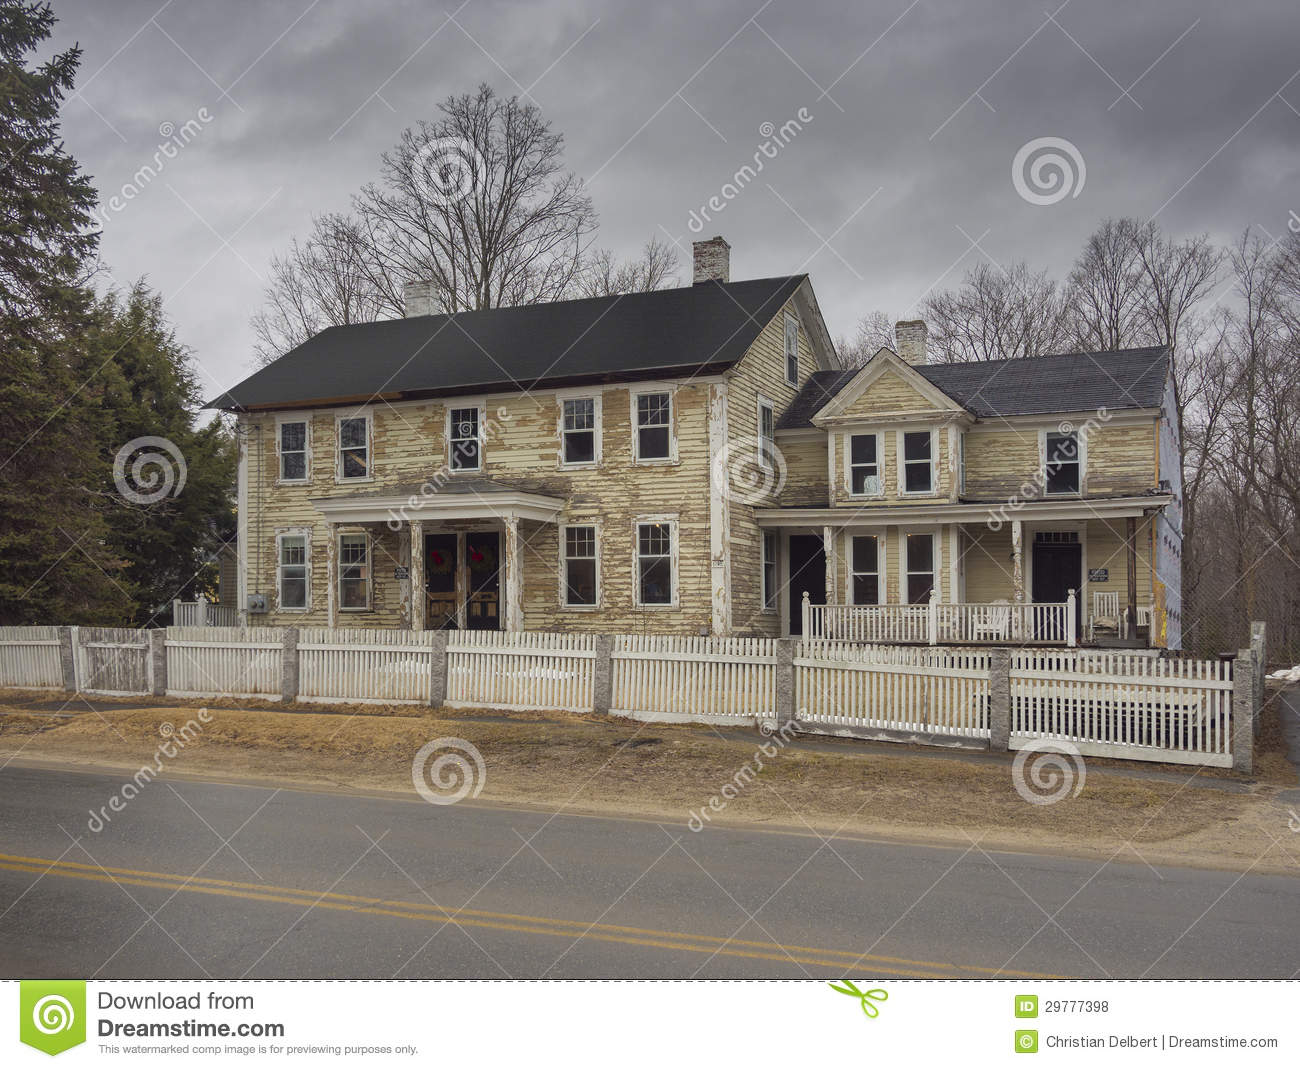 Lead paint stripping of house royalty free stock photos image 29777398 for Lead paint on exterior of house